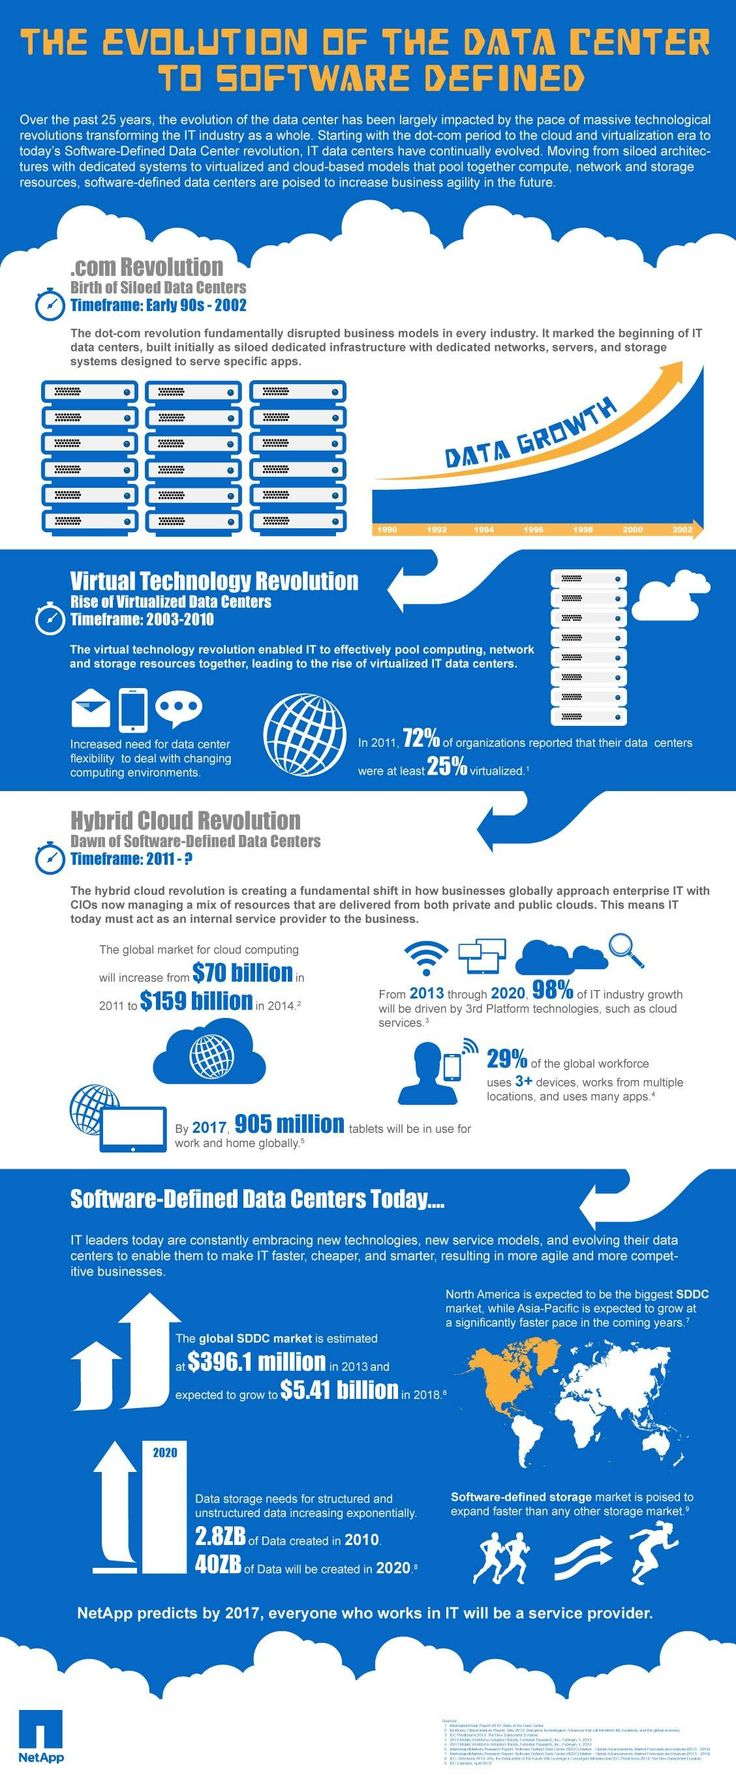 NetApp Infographic Chronicles Birth of Software-Defined Data Centers infographic